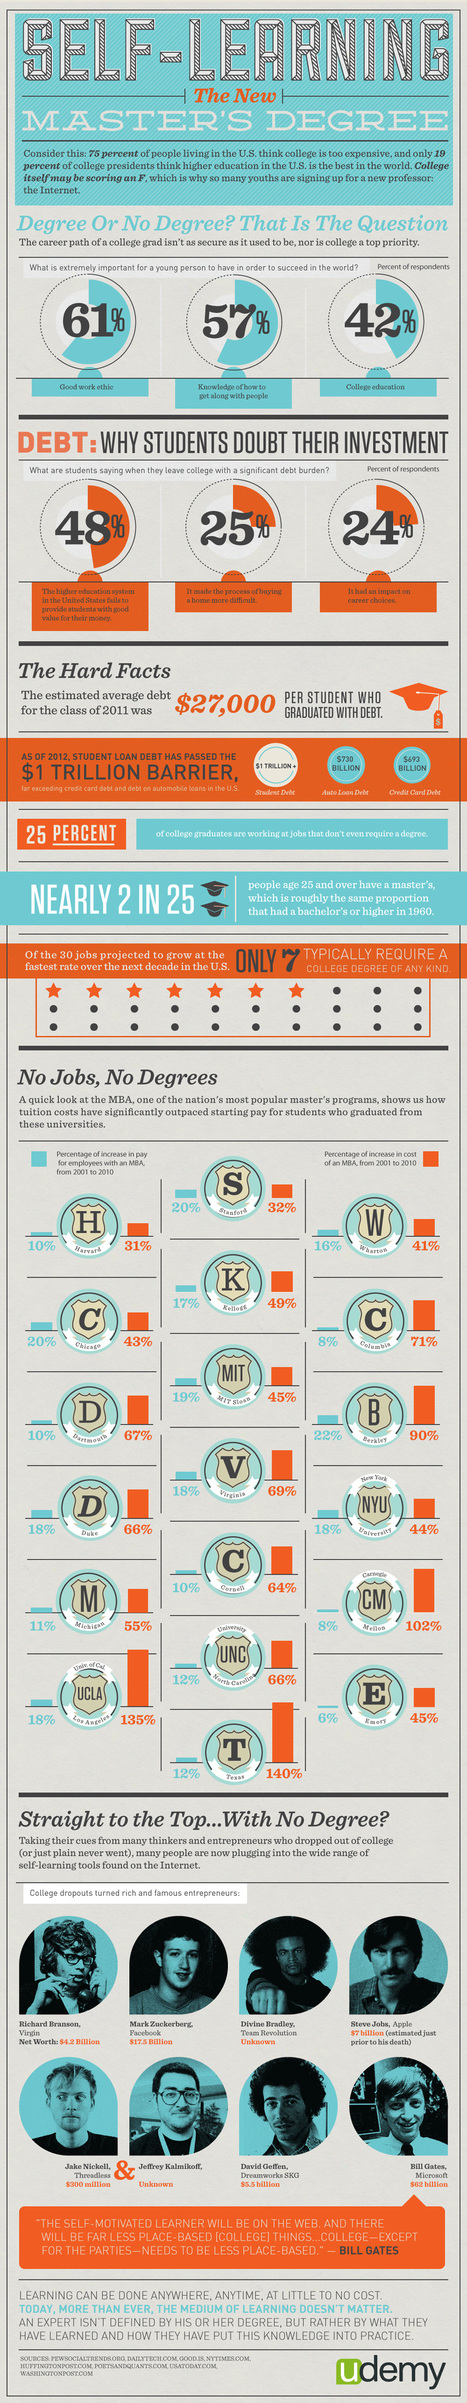 Self-Learning: The New Master's Degree #Infographic | CareerOz | Scoop.it